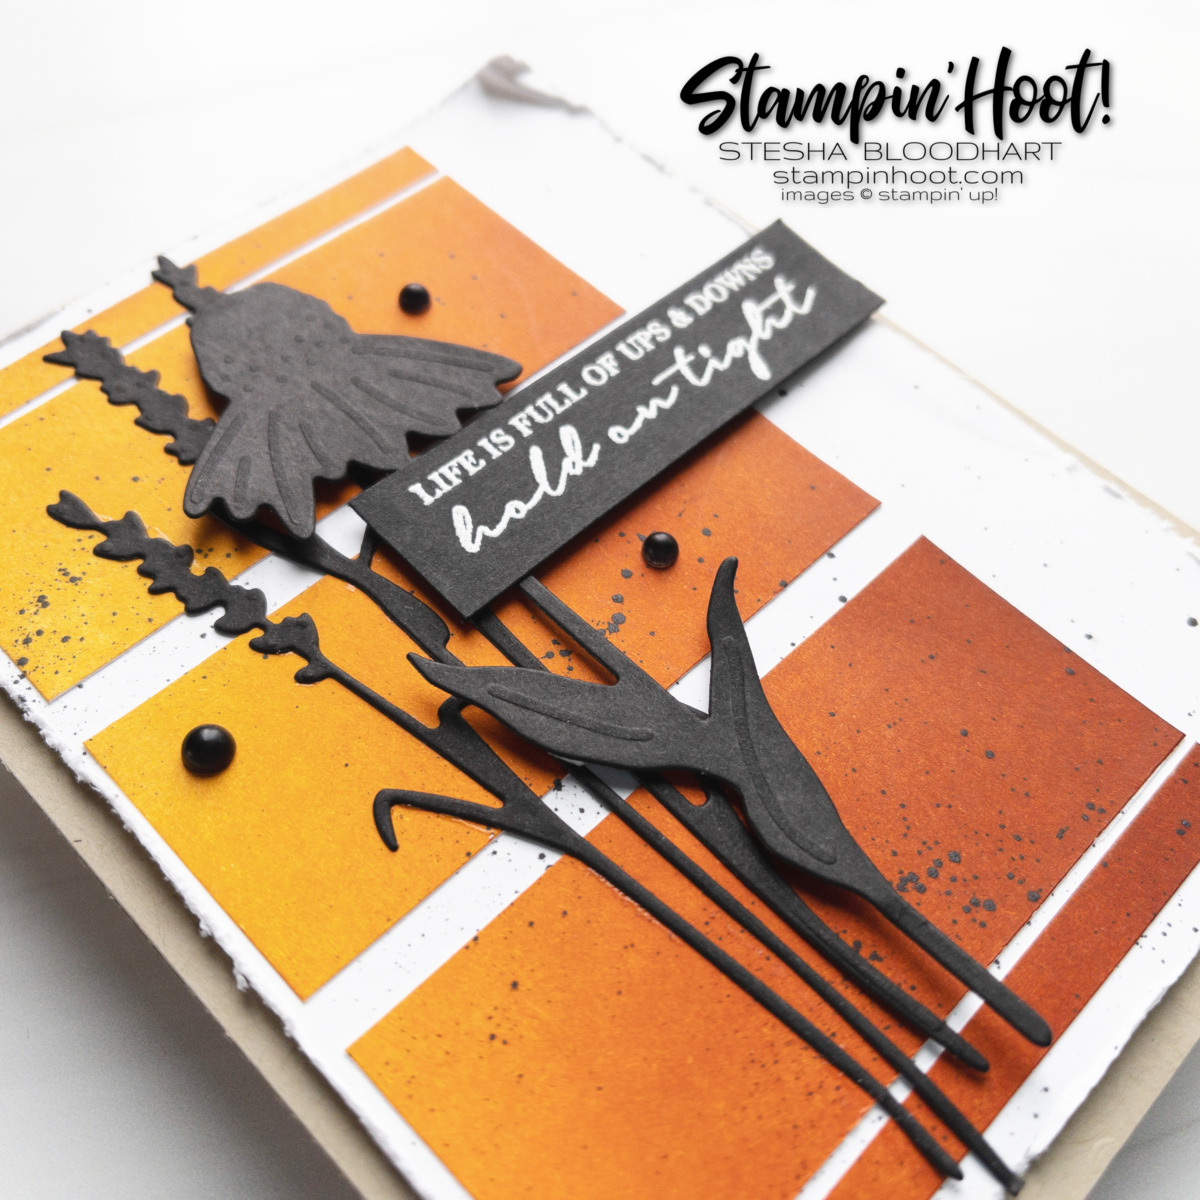 Create this friend card using the Nature's Harvest Bundle by Stampin' Up! Blending Brushes Stesha Bloodhart, Stampin' Hoot!